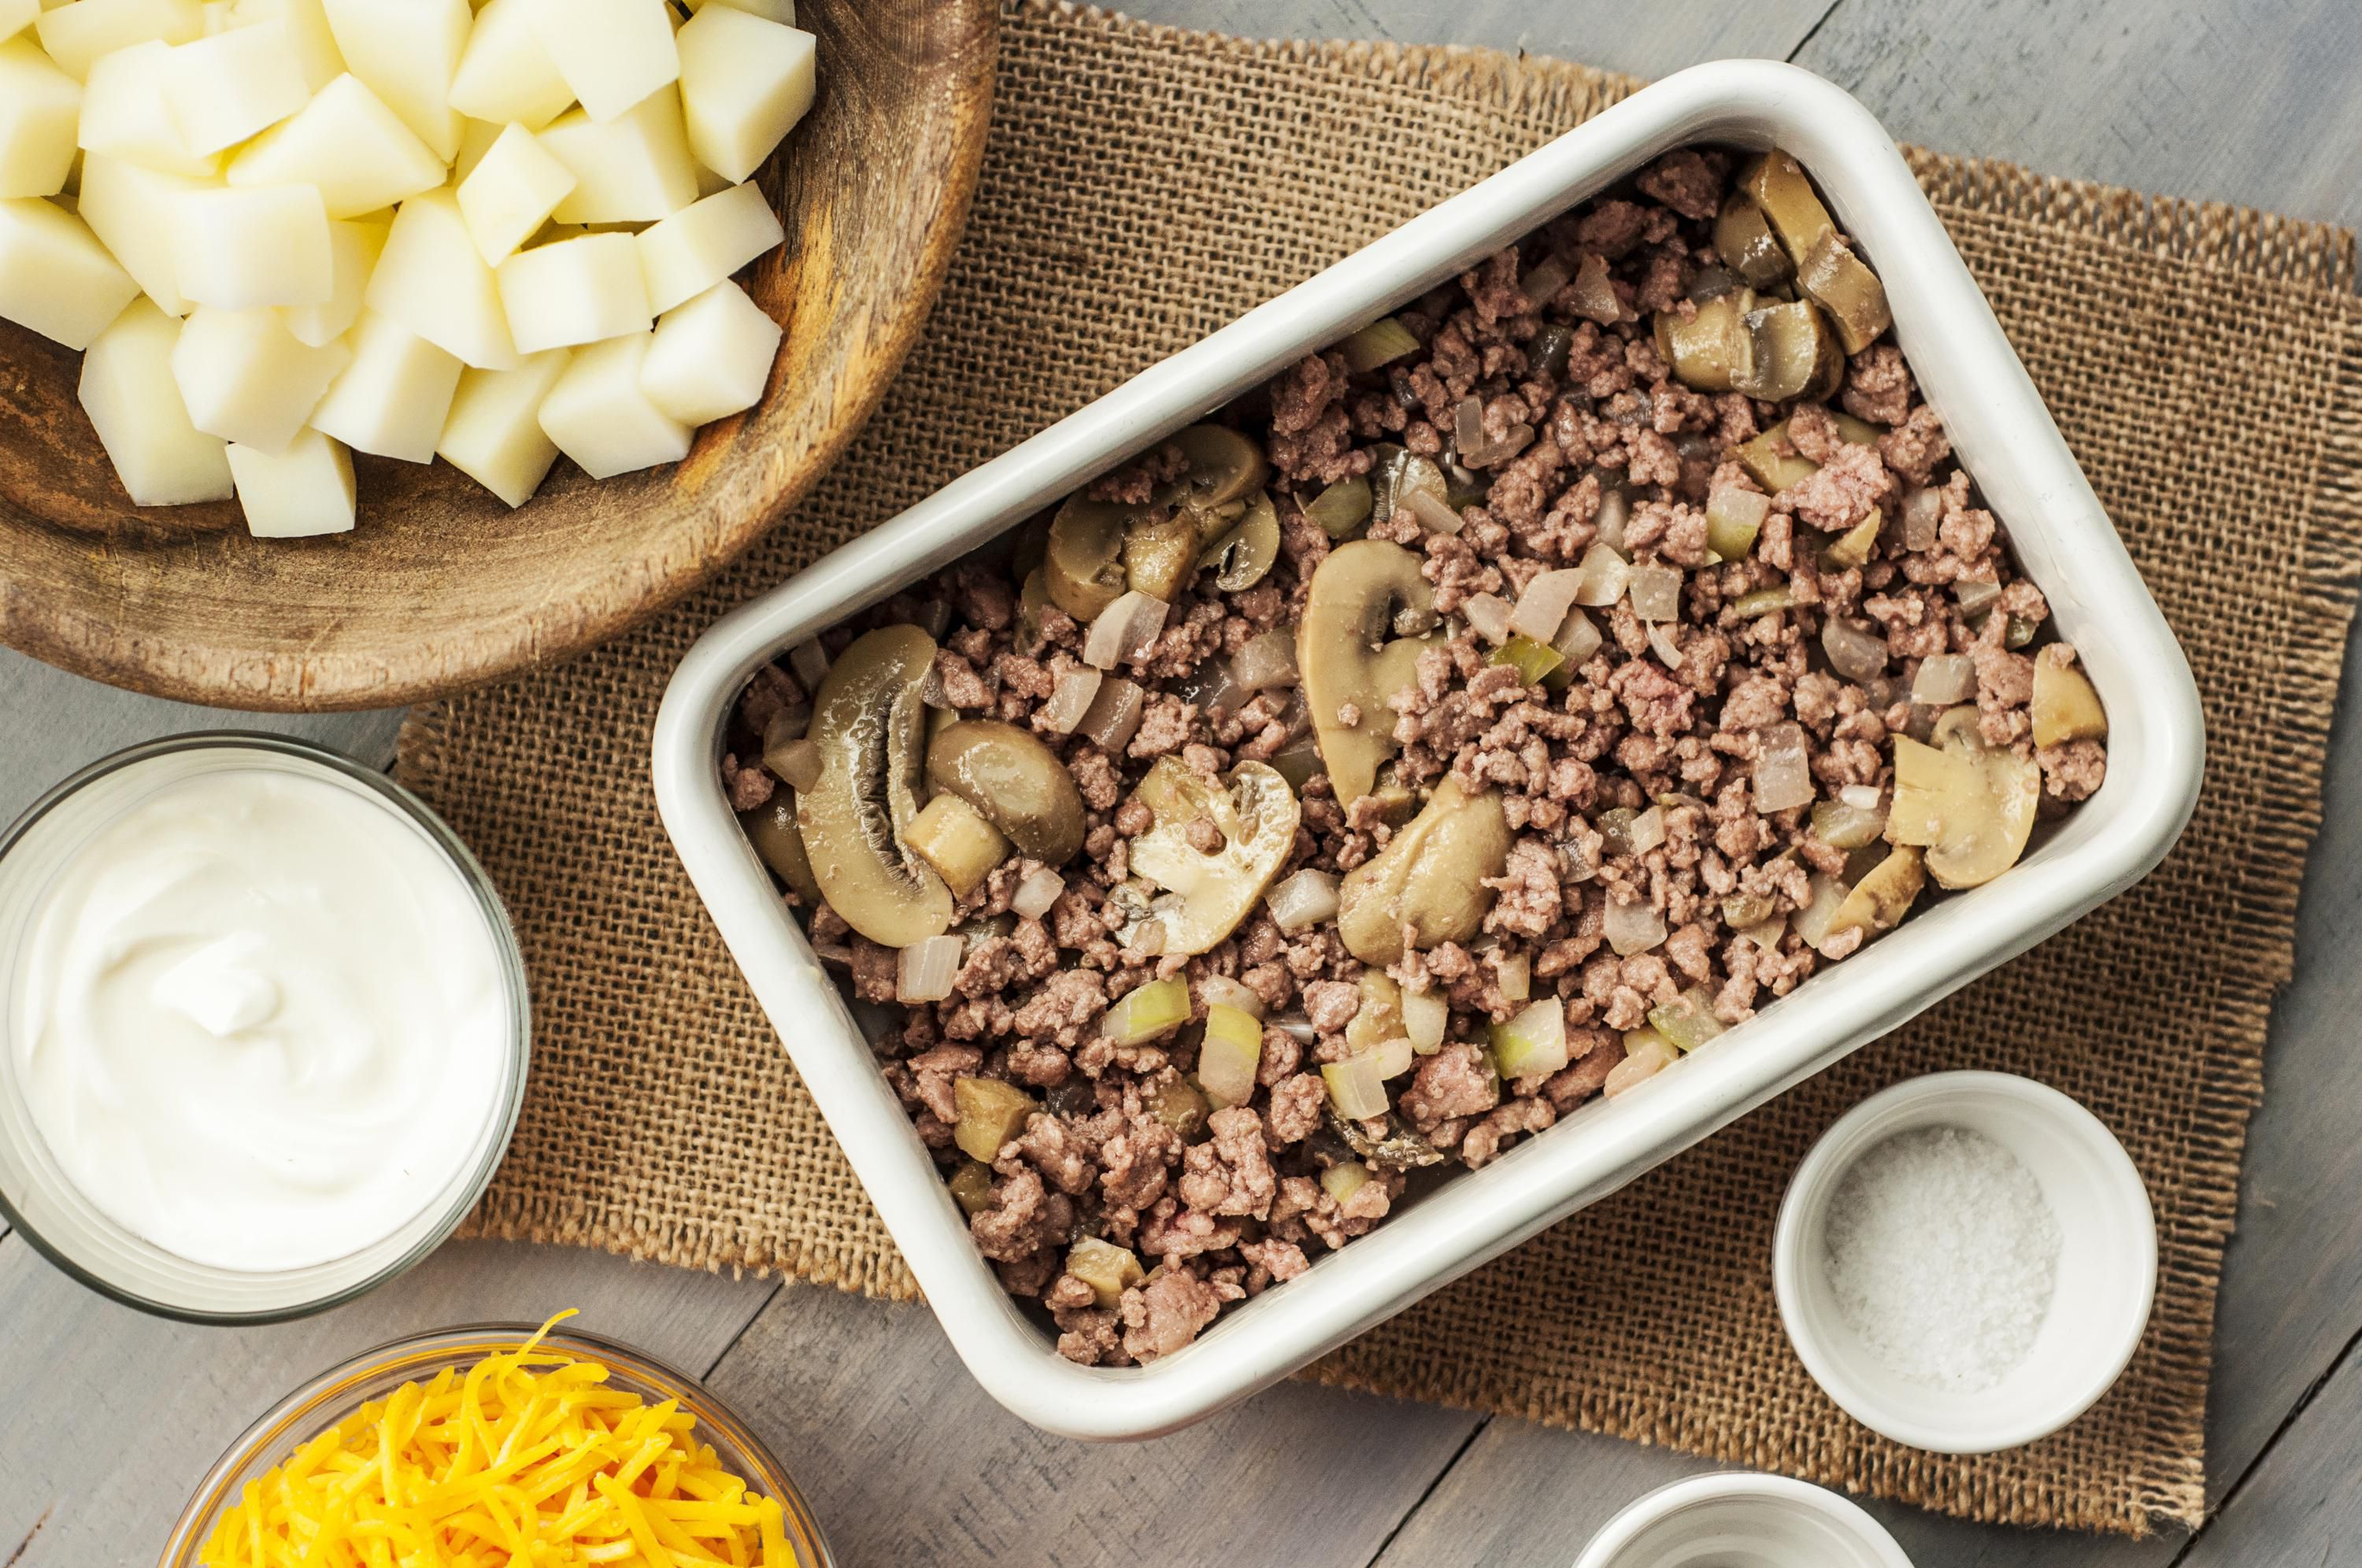 Ground beef and mushrooms in a casserole